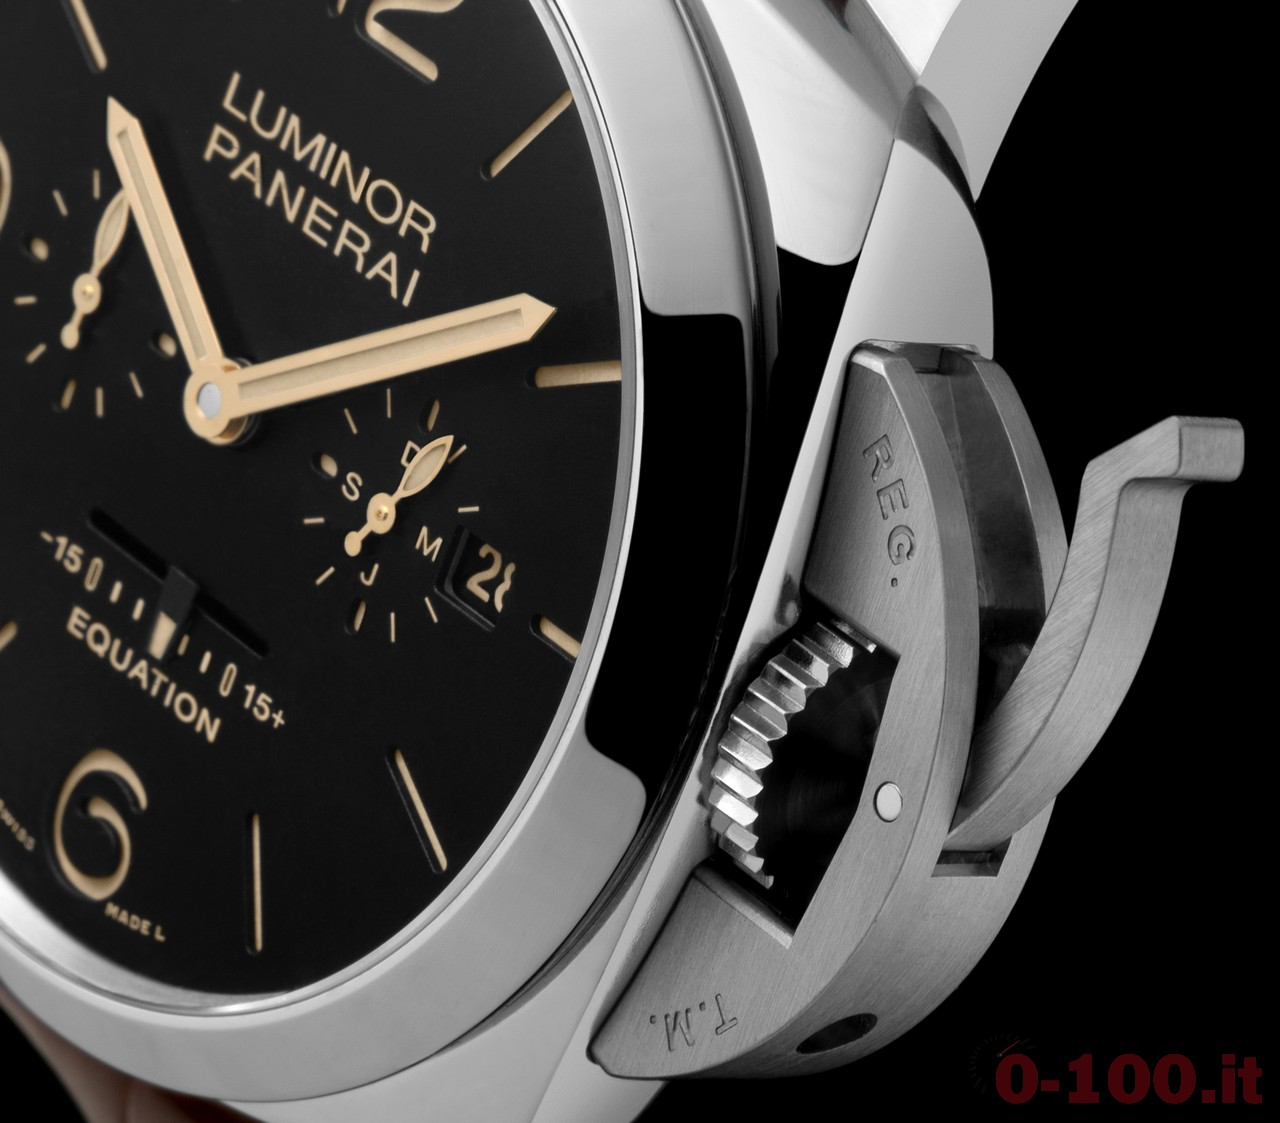 officine-panerai-luminor-1950-equation-of-time-8-days-ref-pam00601-limited-edition_0-100_4